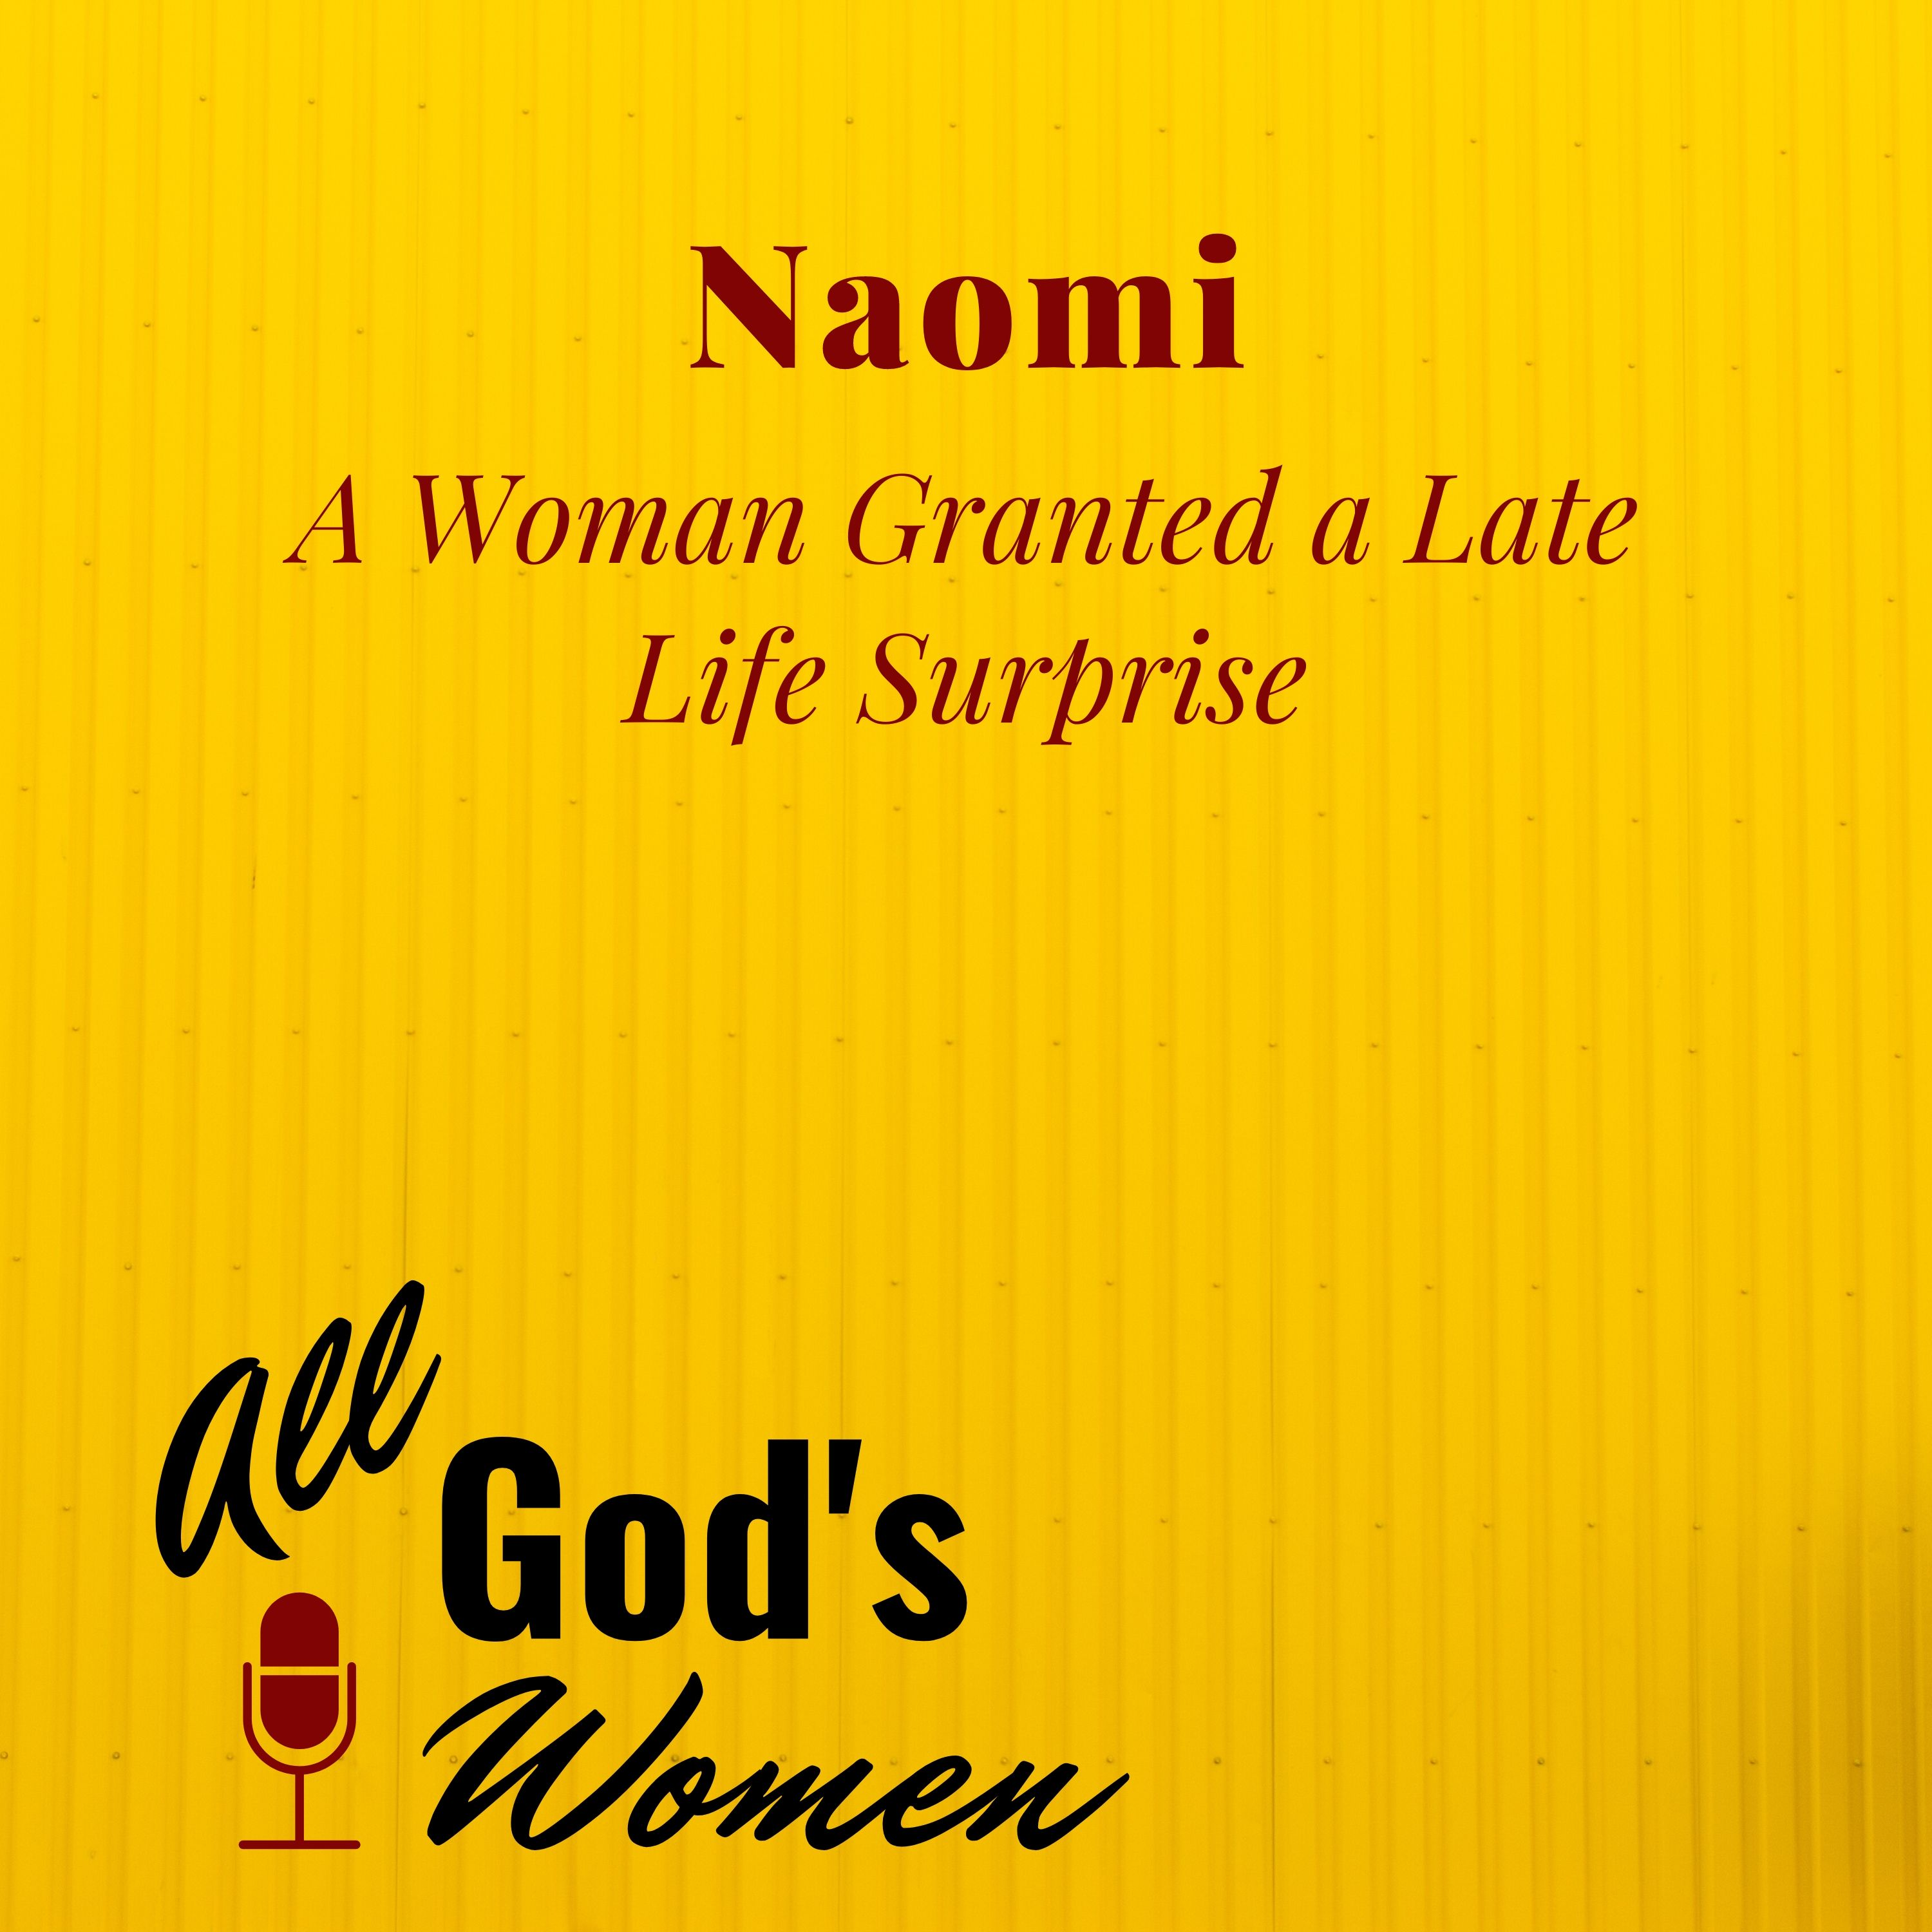 Naomi - A Woman Granted a Late Life Surprise